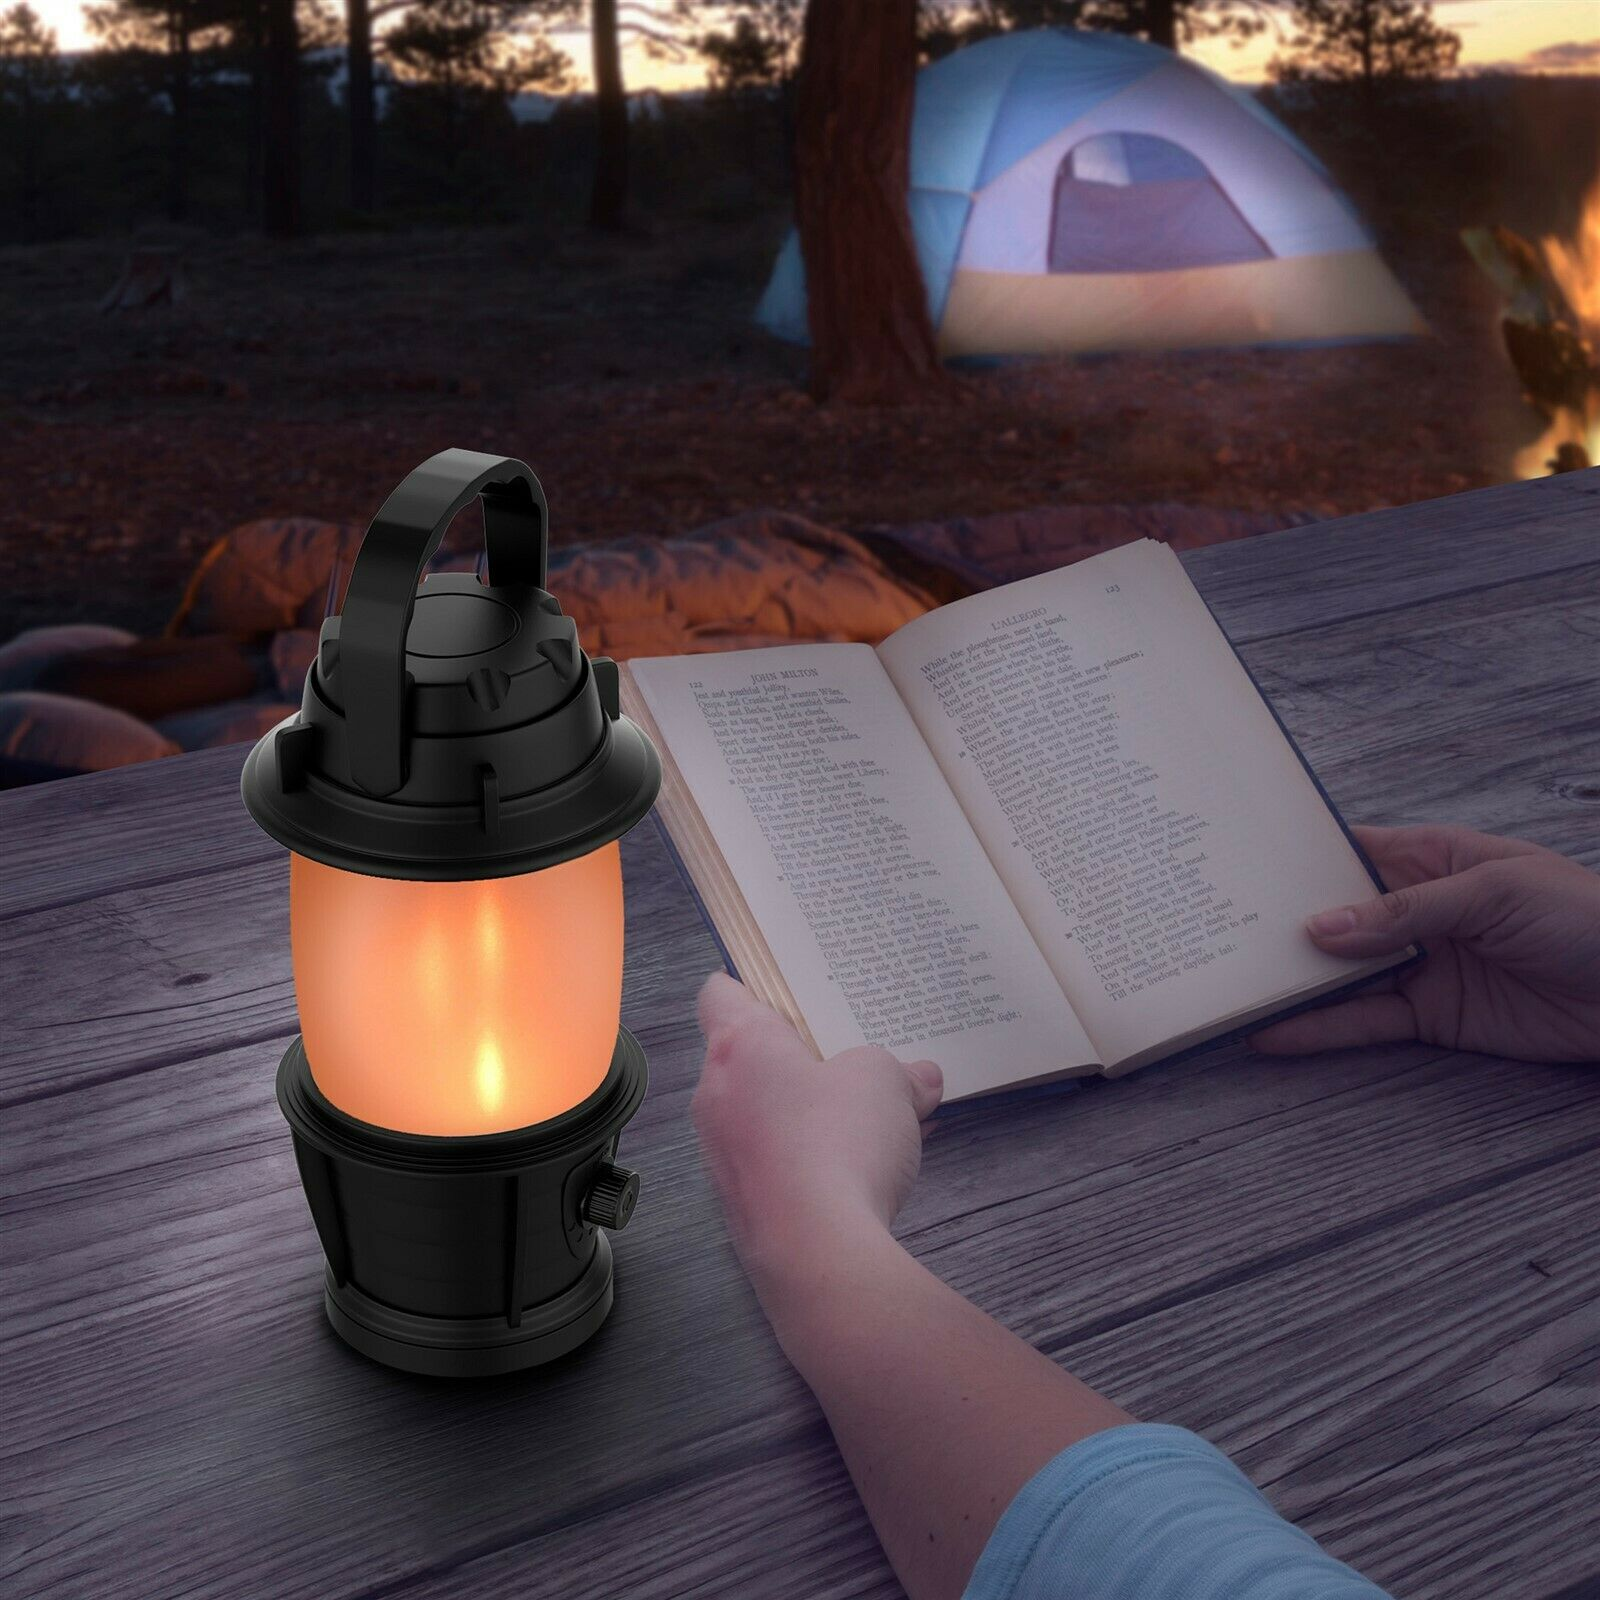 Aaa Battery Flickering 3 Light Lantern Torch Effect Led Operated Flame Camping NnOkXw8P0